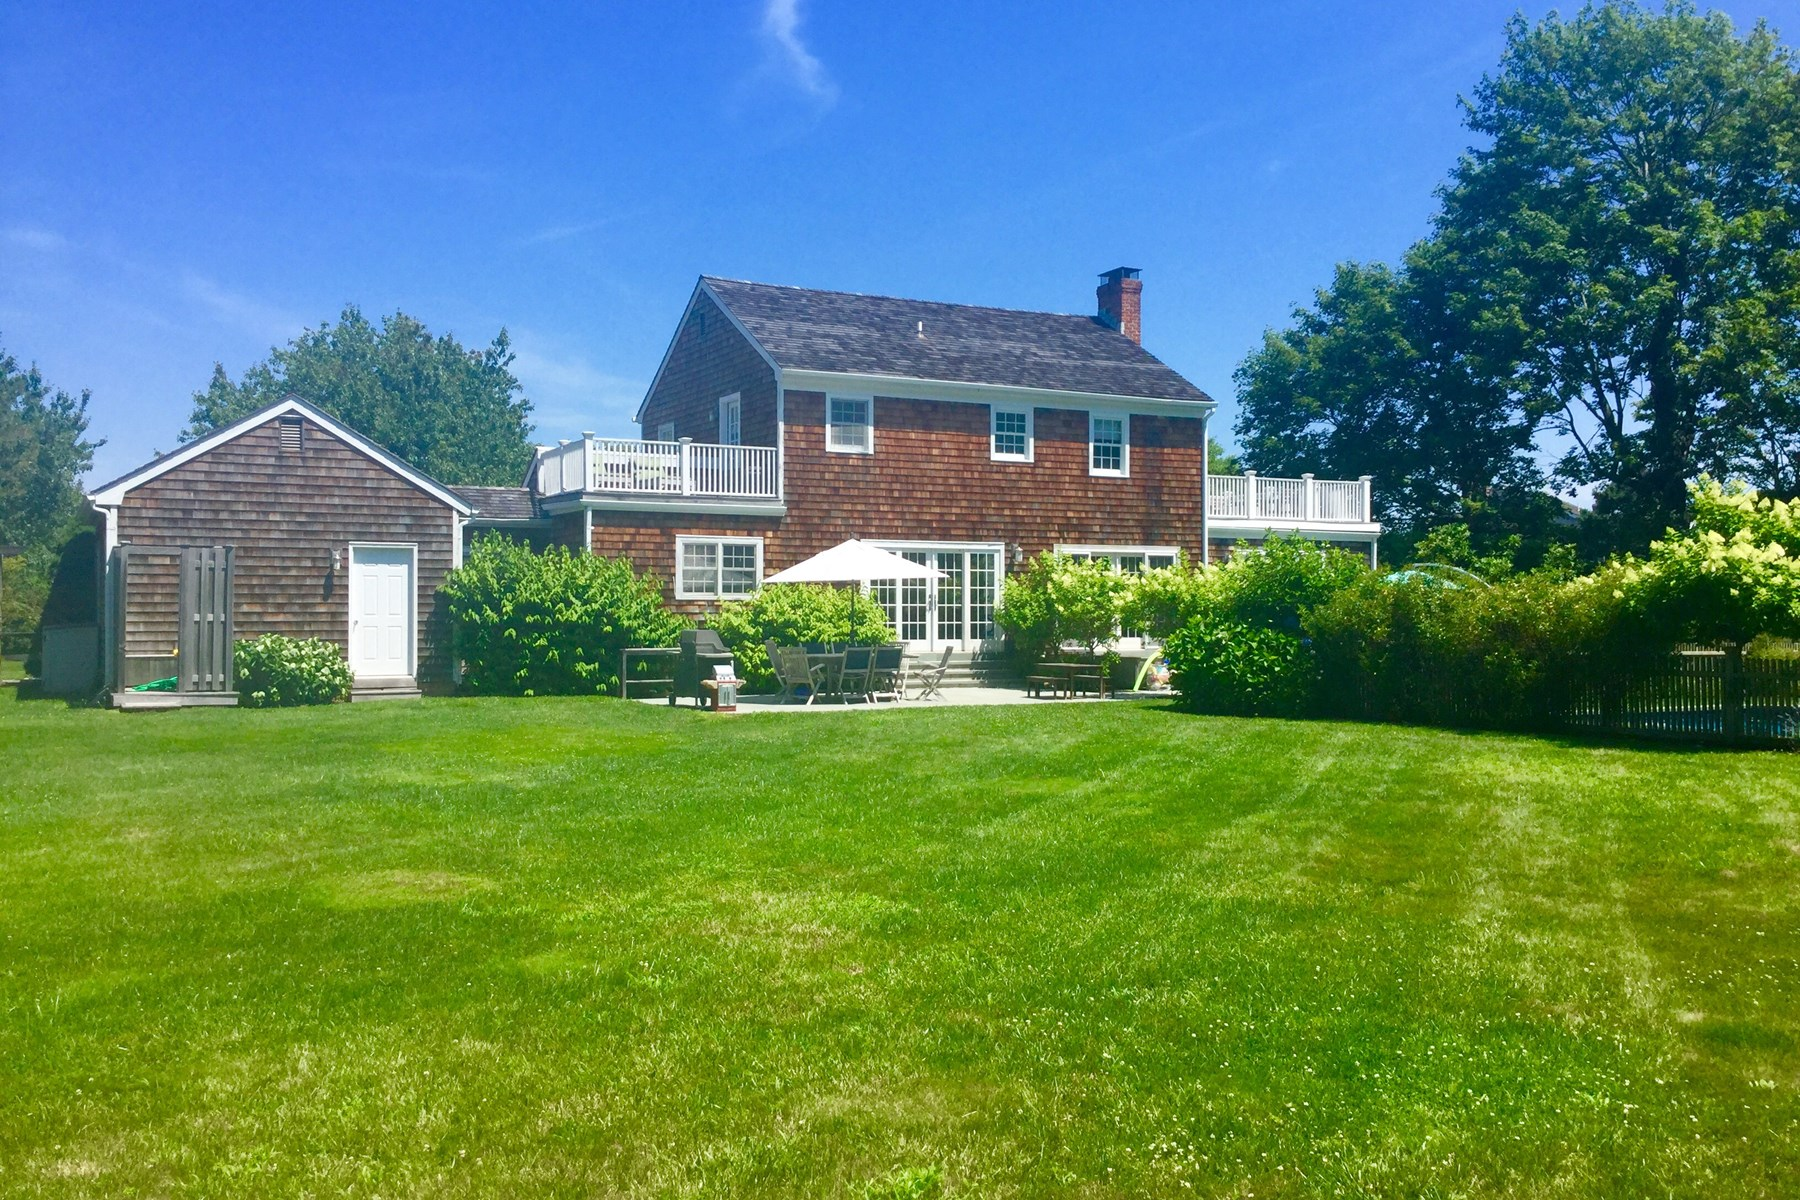 Casa Unifamiliar por un Venta en The Hamptons' Best Kept Secret 15 Ludlow Green Bridgehampton North, Bridgehampton, Nueva York, 11932 Estados Unidos